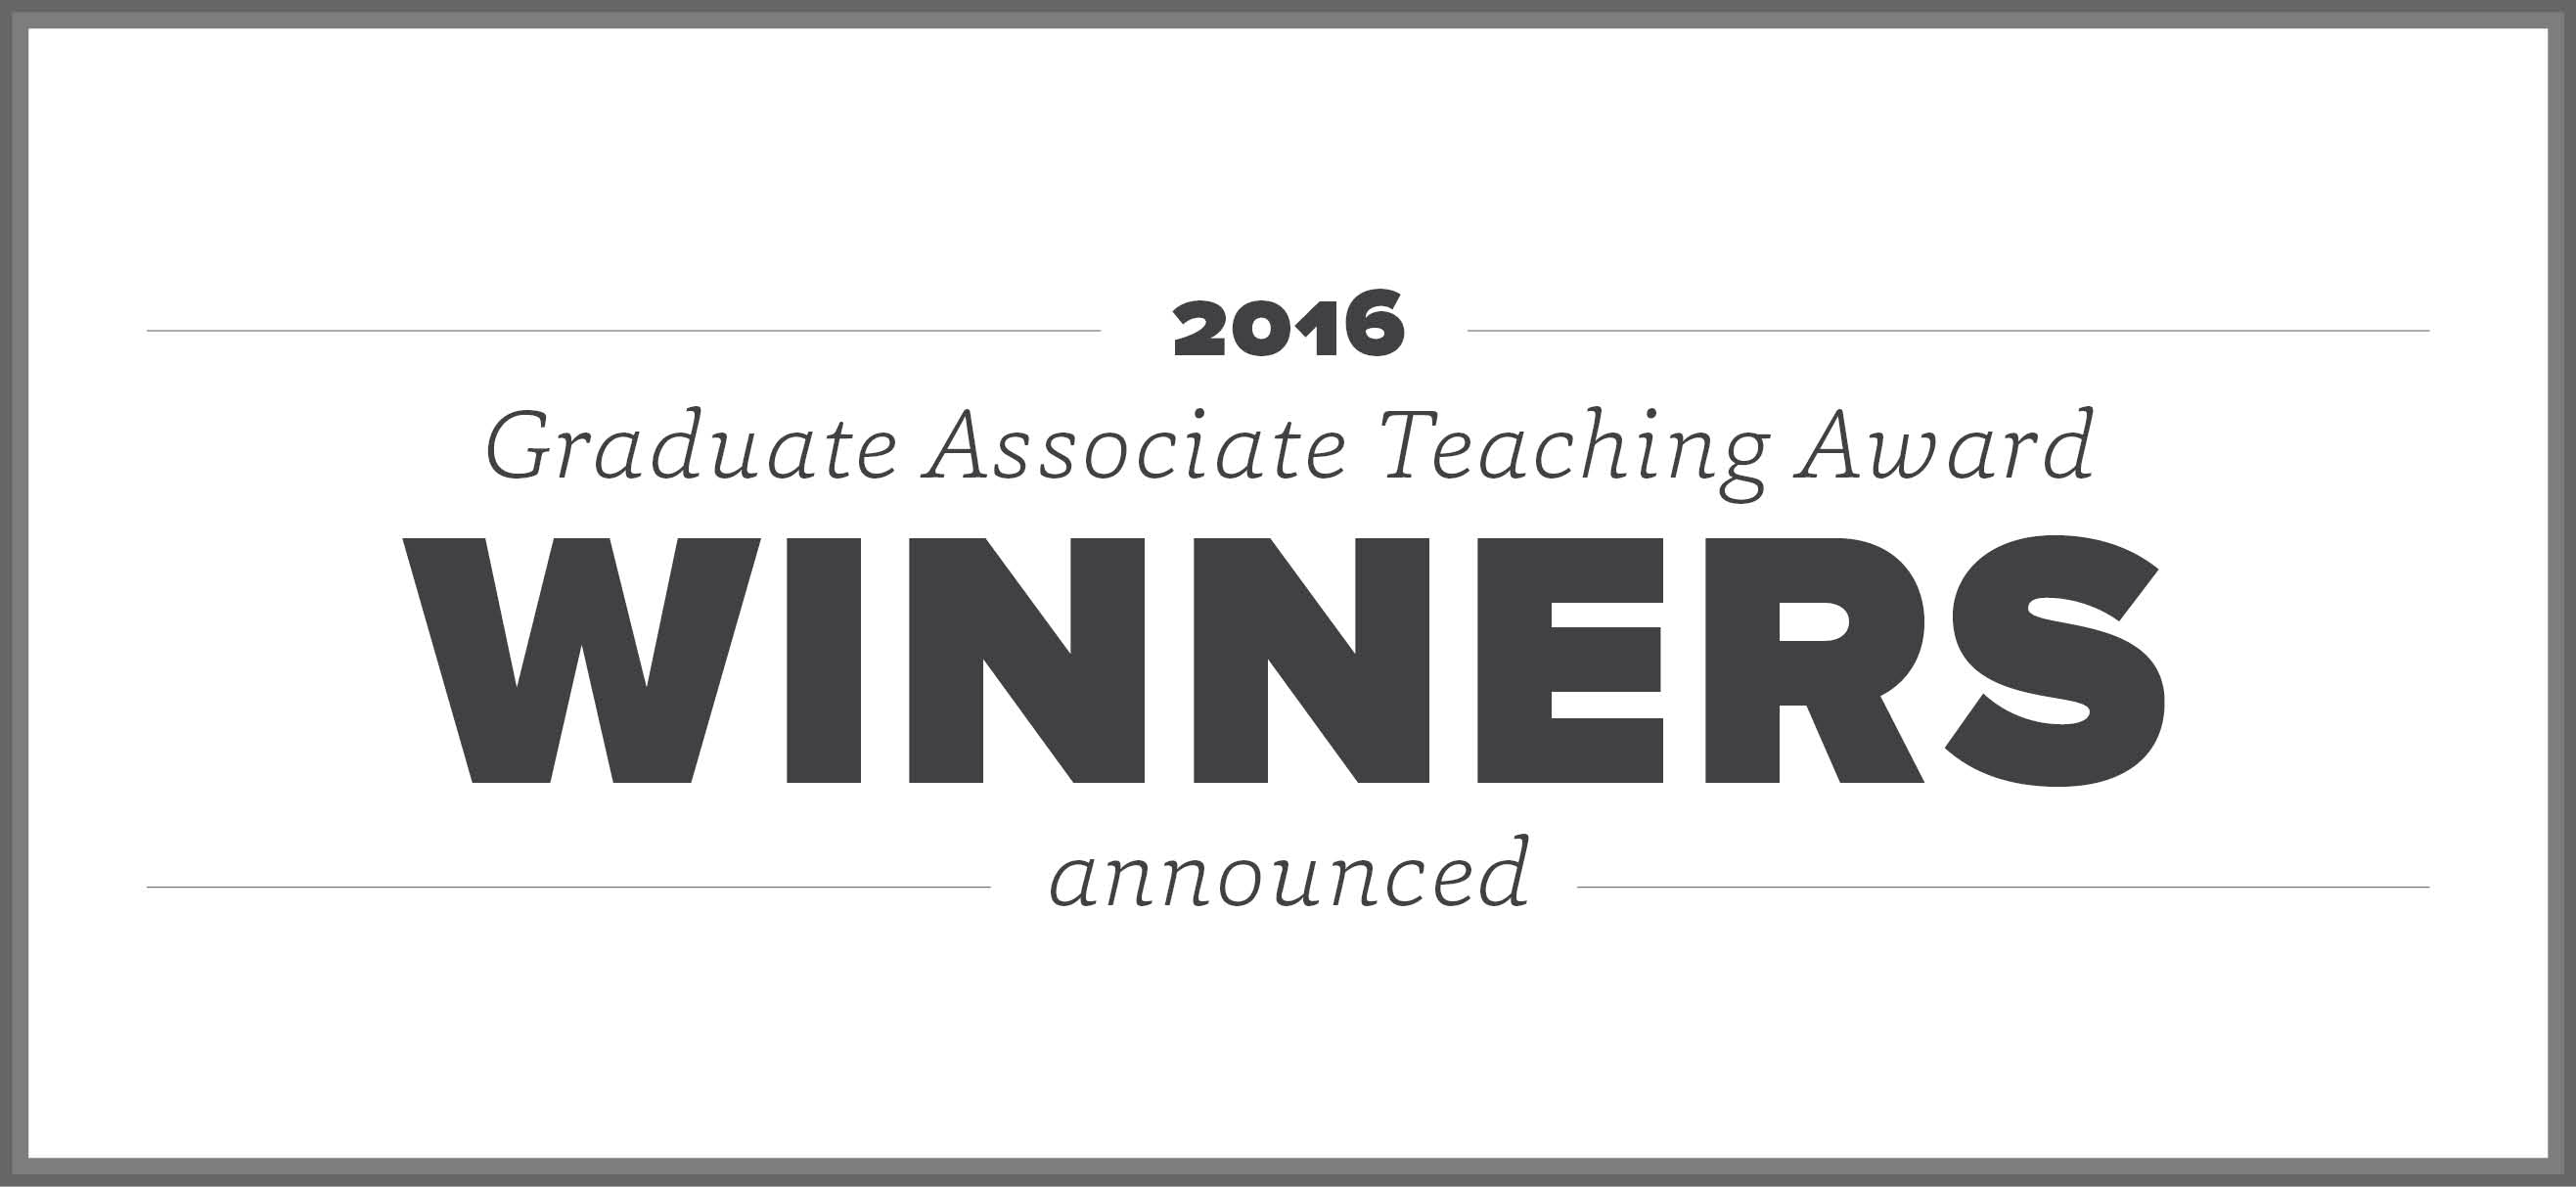 2016 Graduate Associate Teaching Award Winners Announced